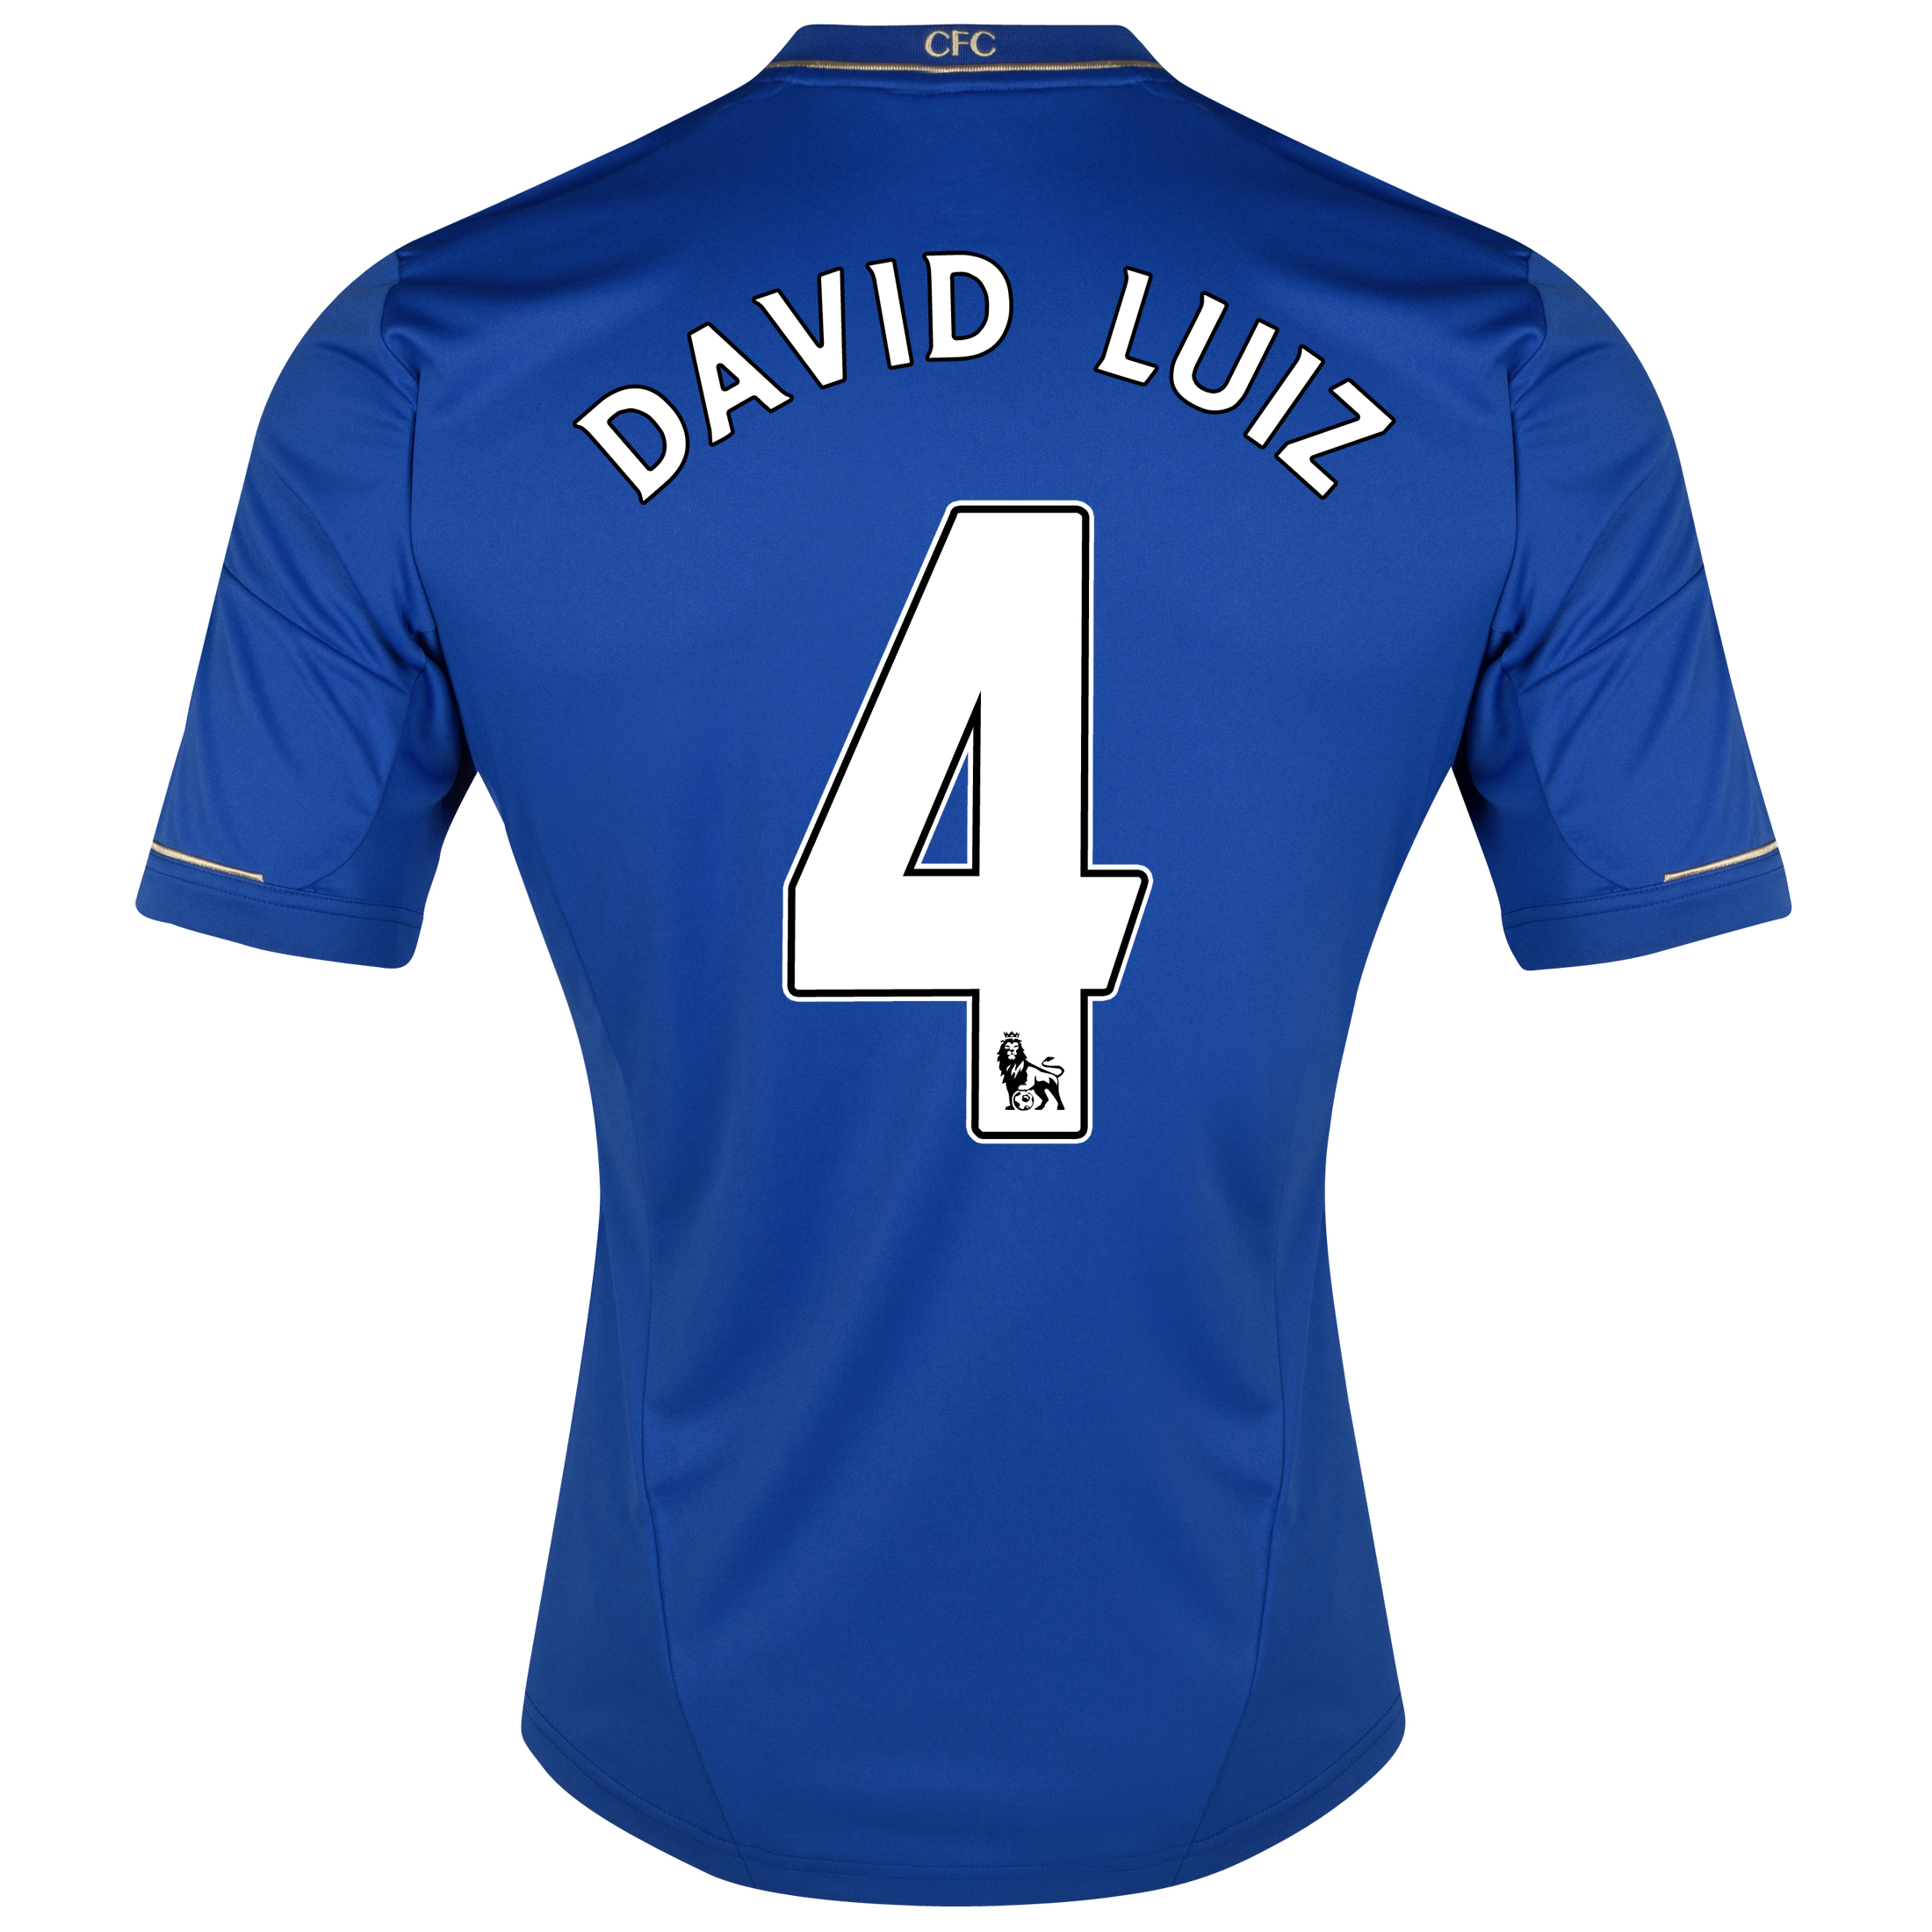 Chelsea Home Shirt 2012/13 with David Luiz 4 printing